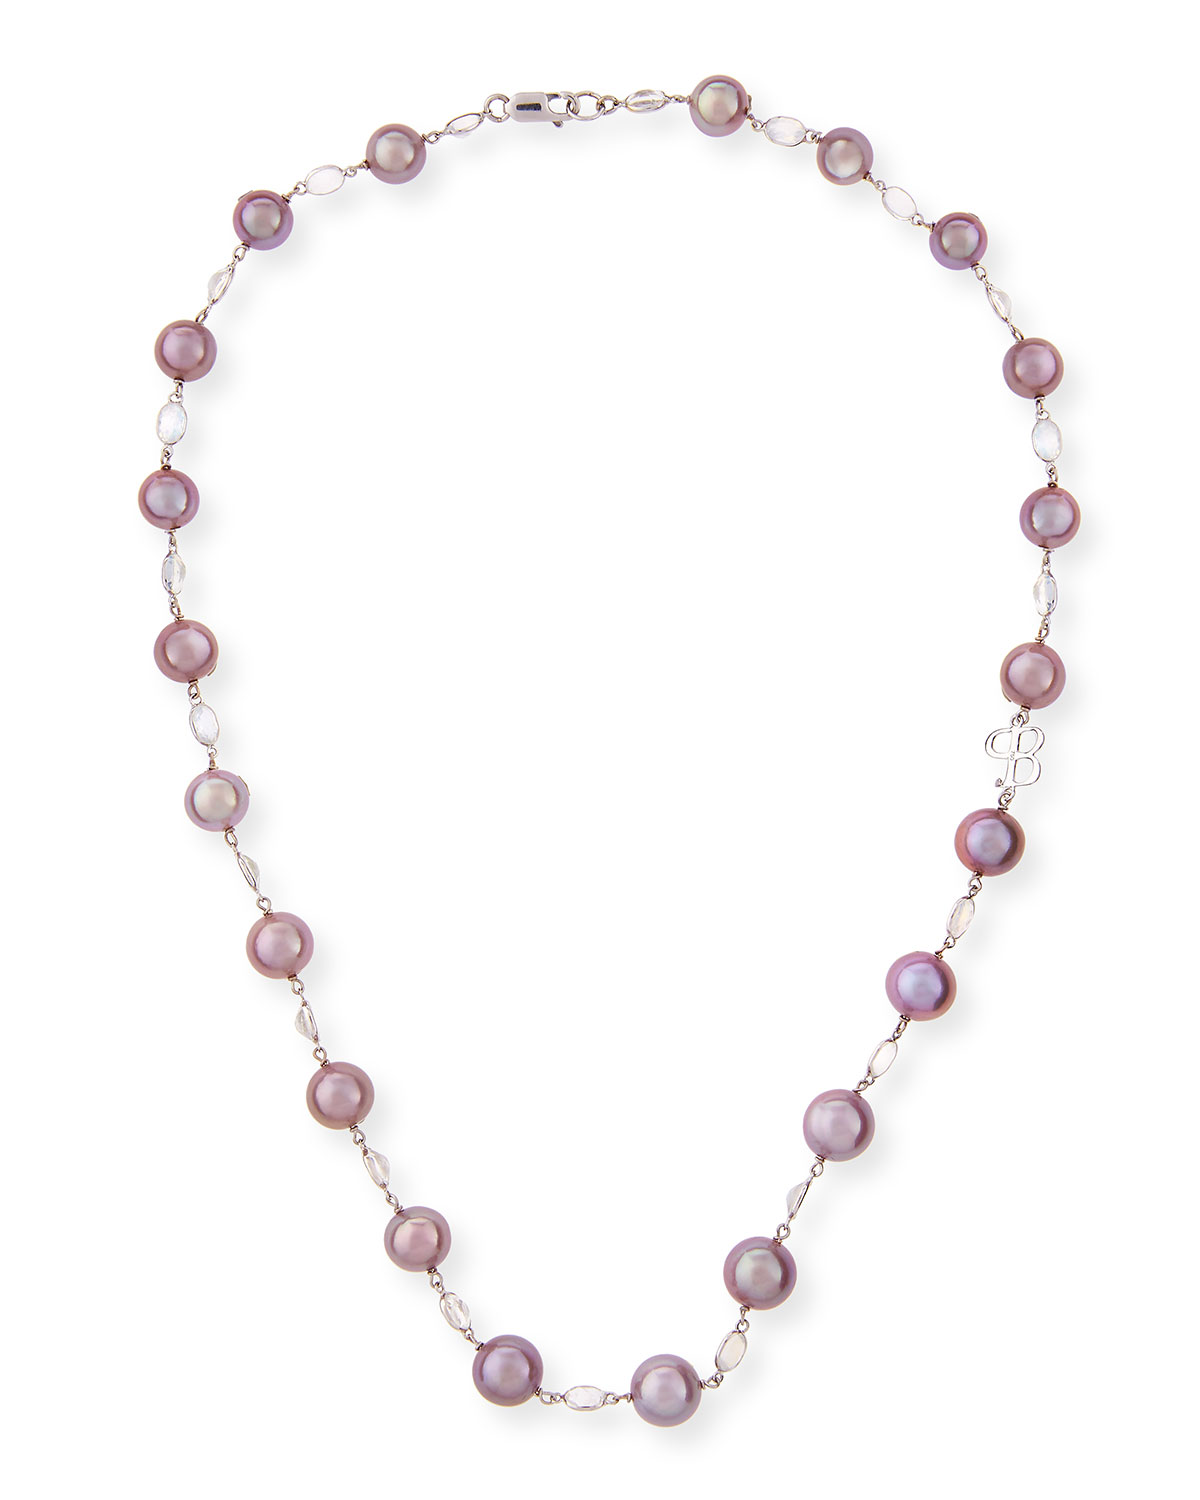 """BELPEARL KASUMIGA PINK PEARL & MOONSTONE NECKLACE IN 18K WHITE GOLD, 20"""""""